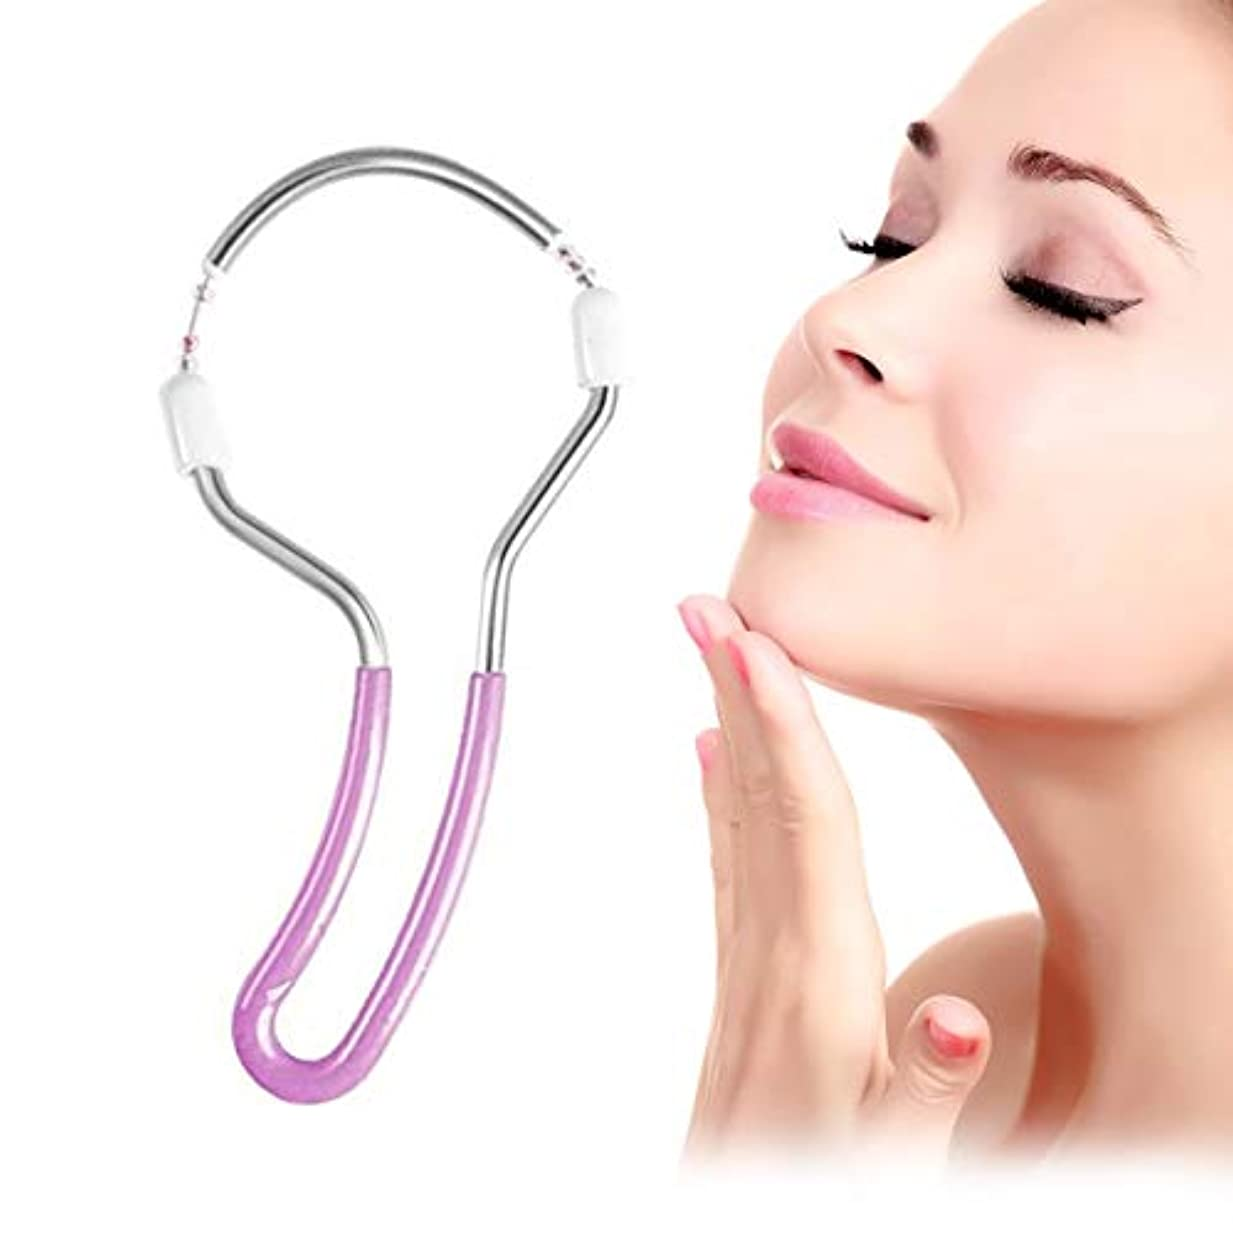 Ergonomic Design Women Face Facial Hair Remover Stick Lightweight Hair Removal Threading Beauty Care Tools Shaving...